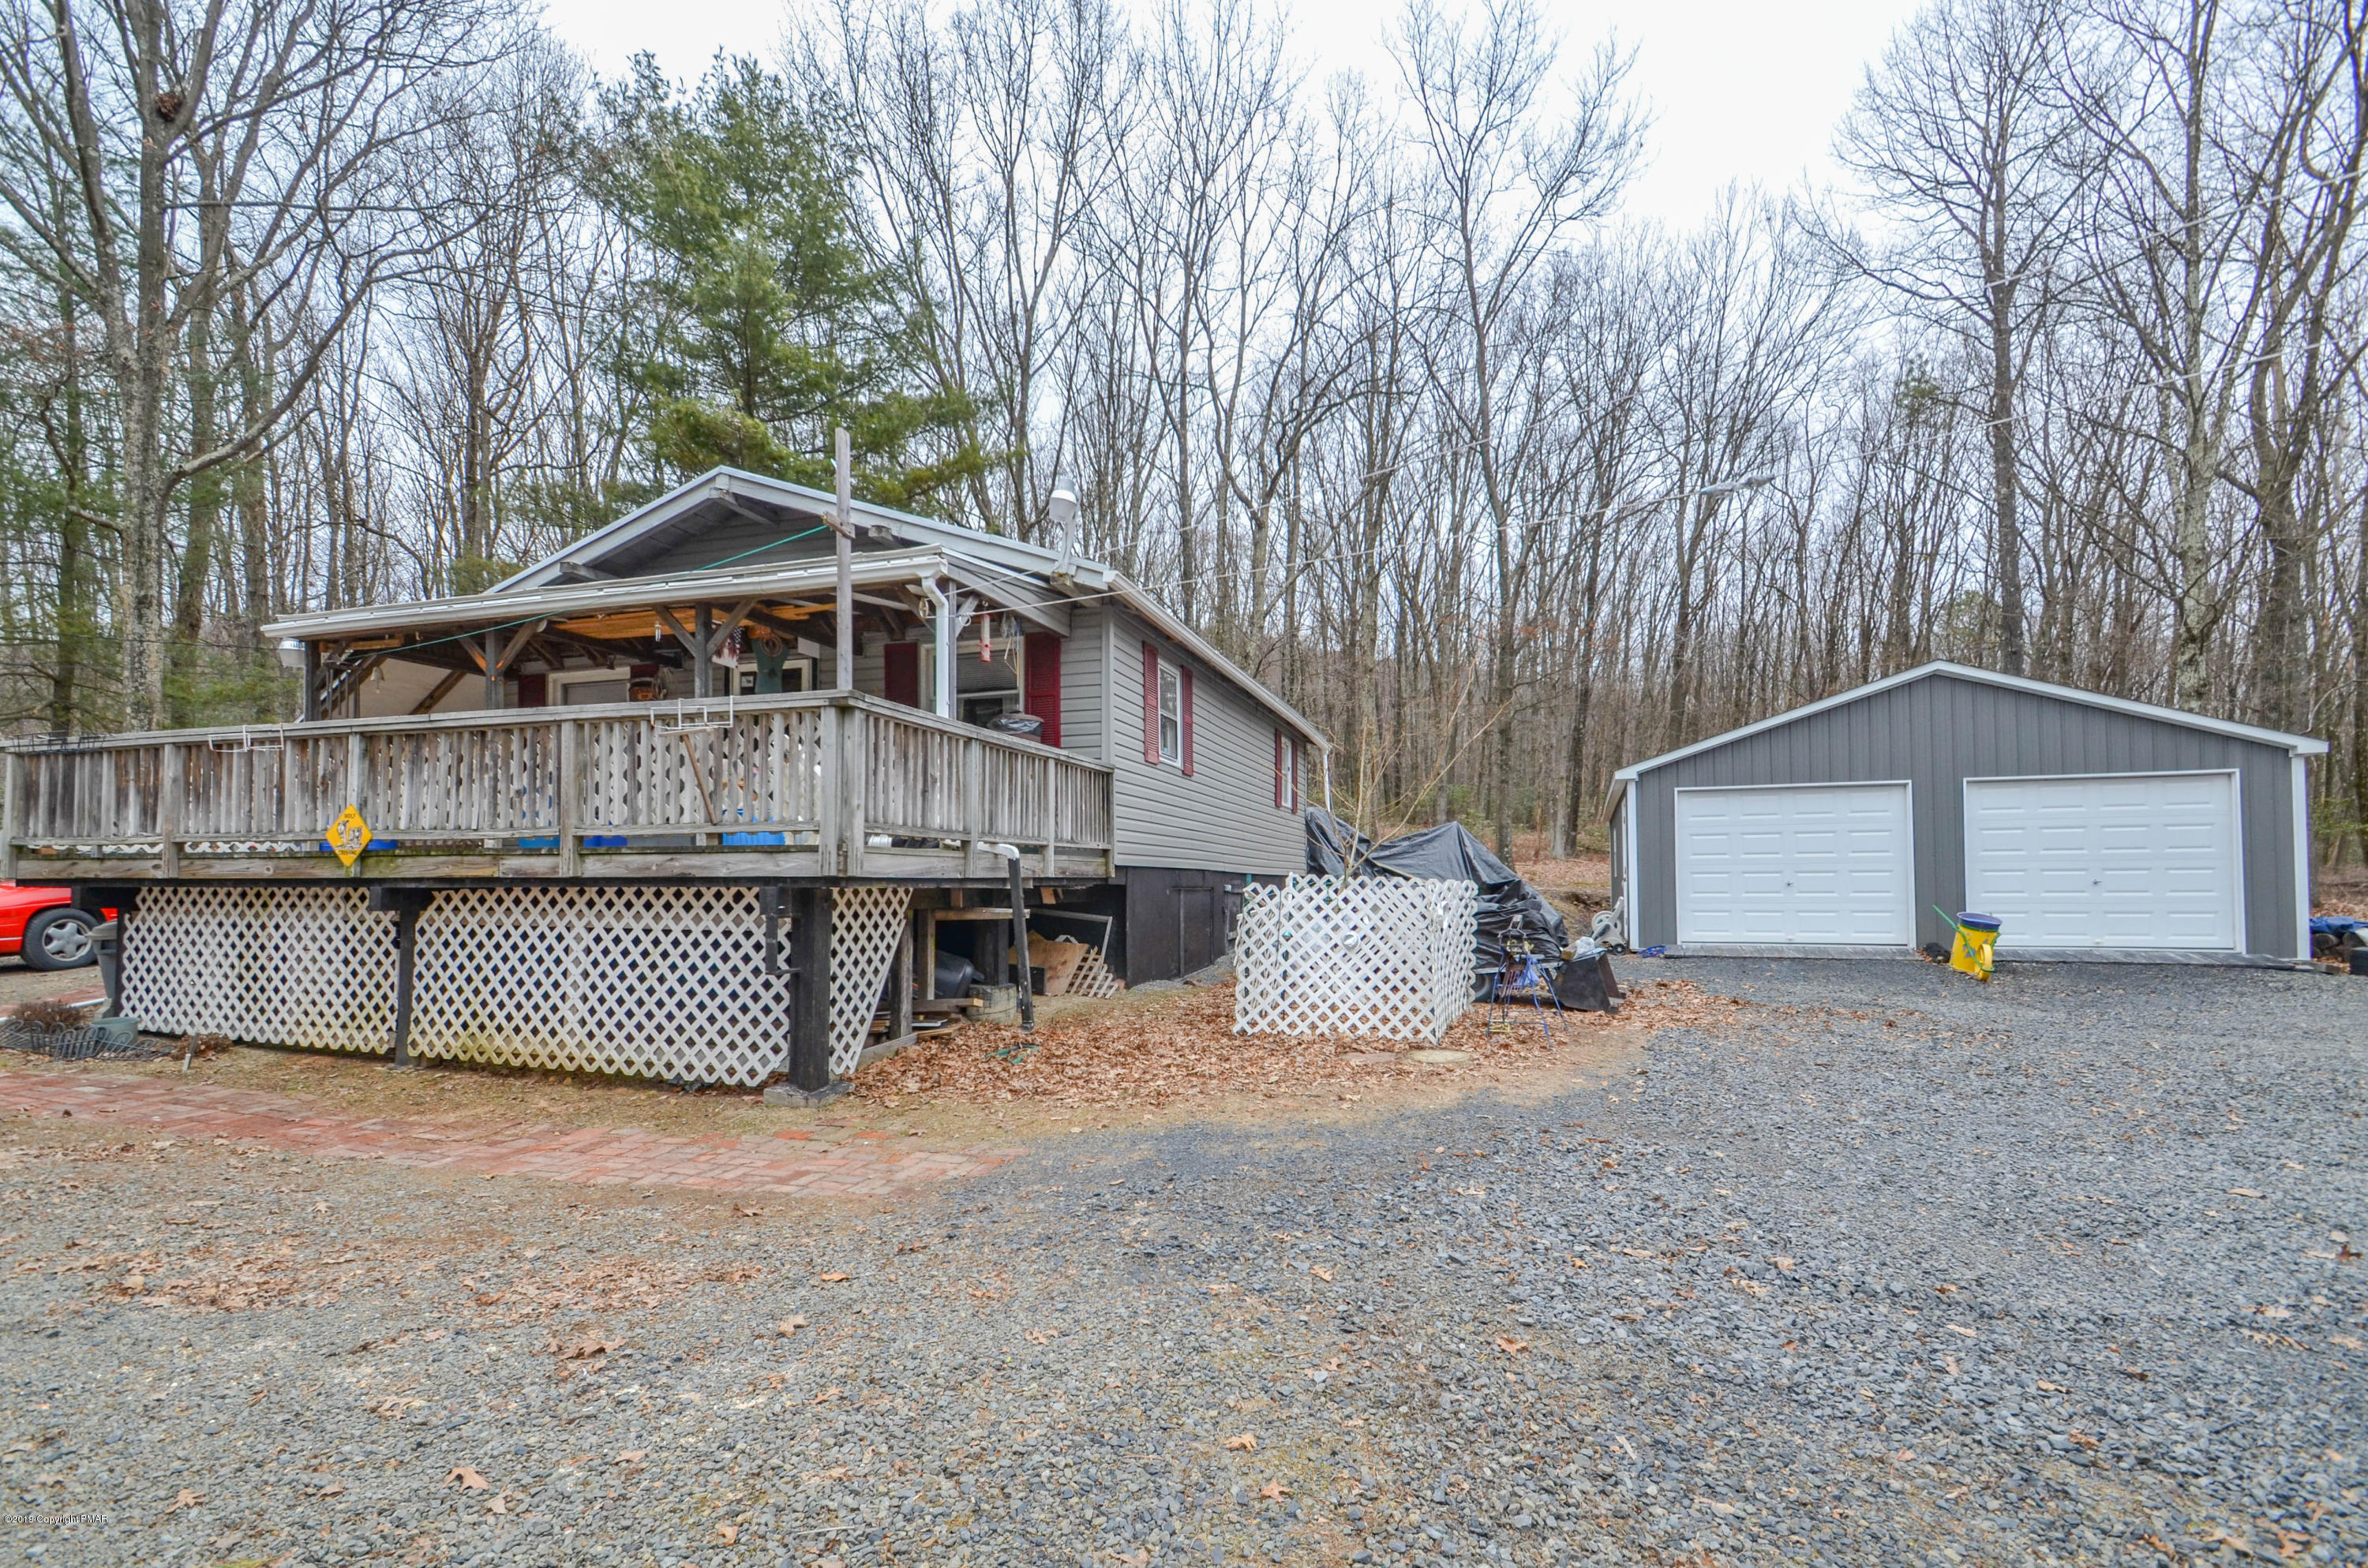 206 N Eastbrook Rd, Effort, PA 18330